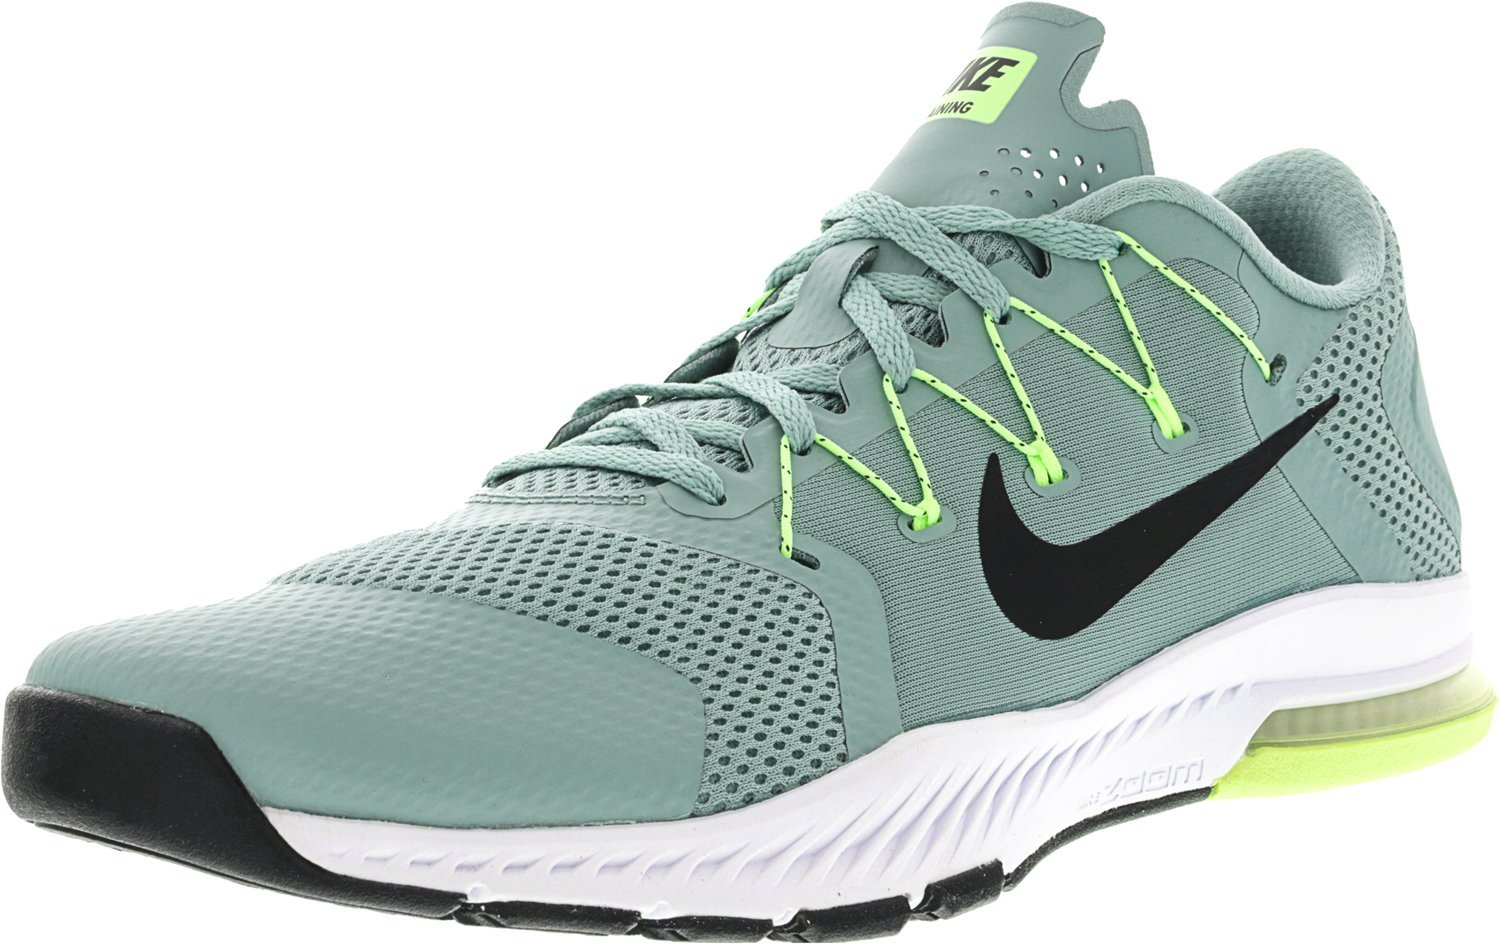 NIKE Air Zoom Train Complete Mens Running Trainers 882119 Sneakers Shoes B01DLD4F58 8.5 D(M) US|Green